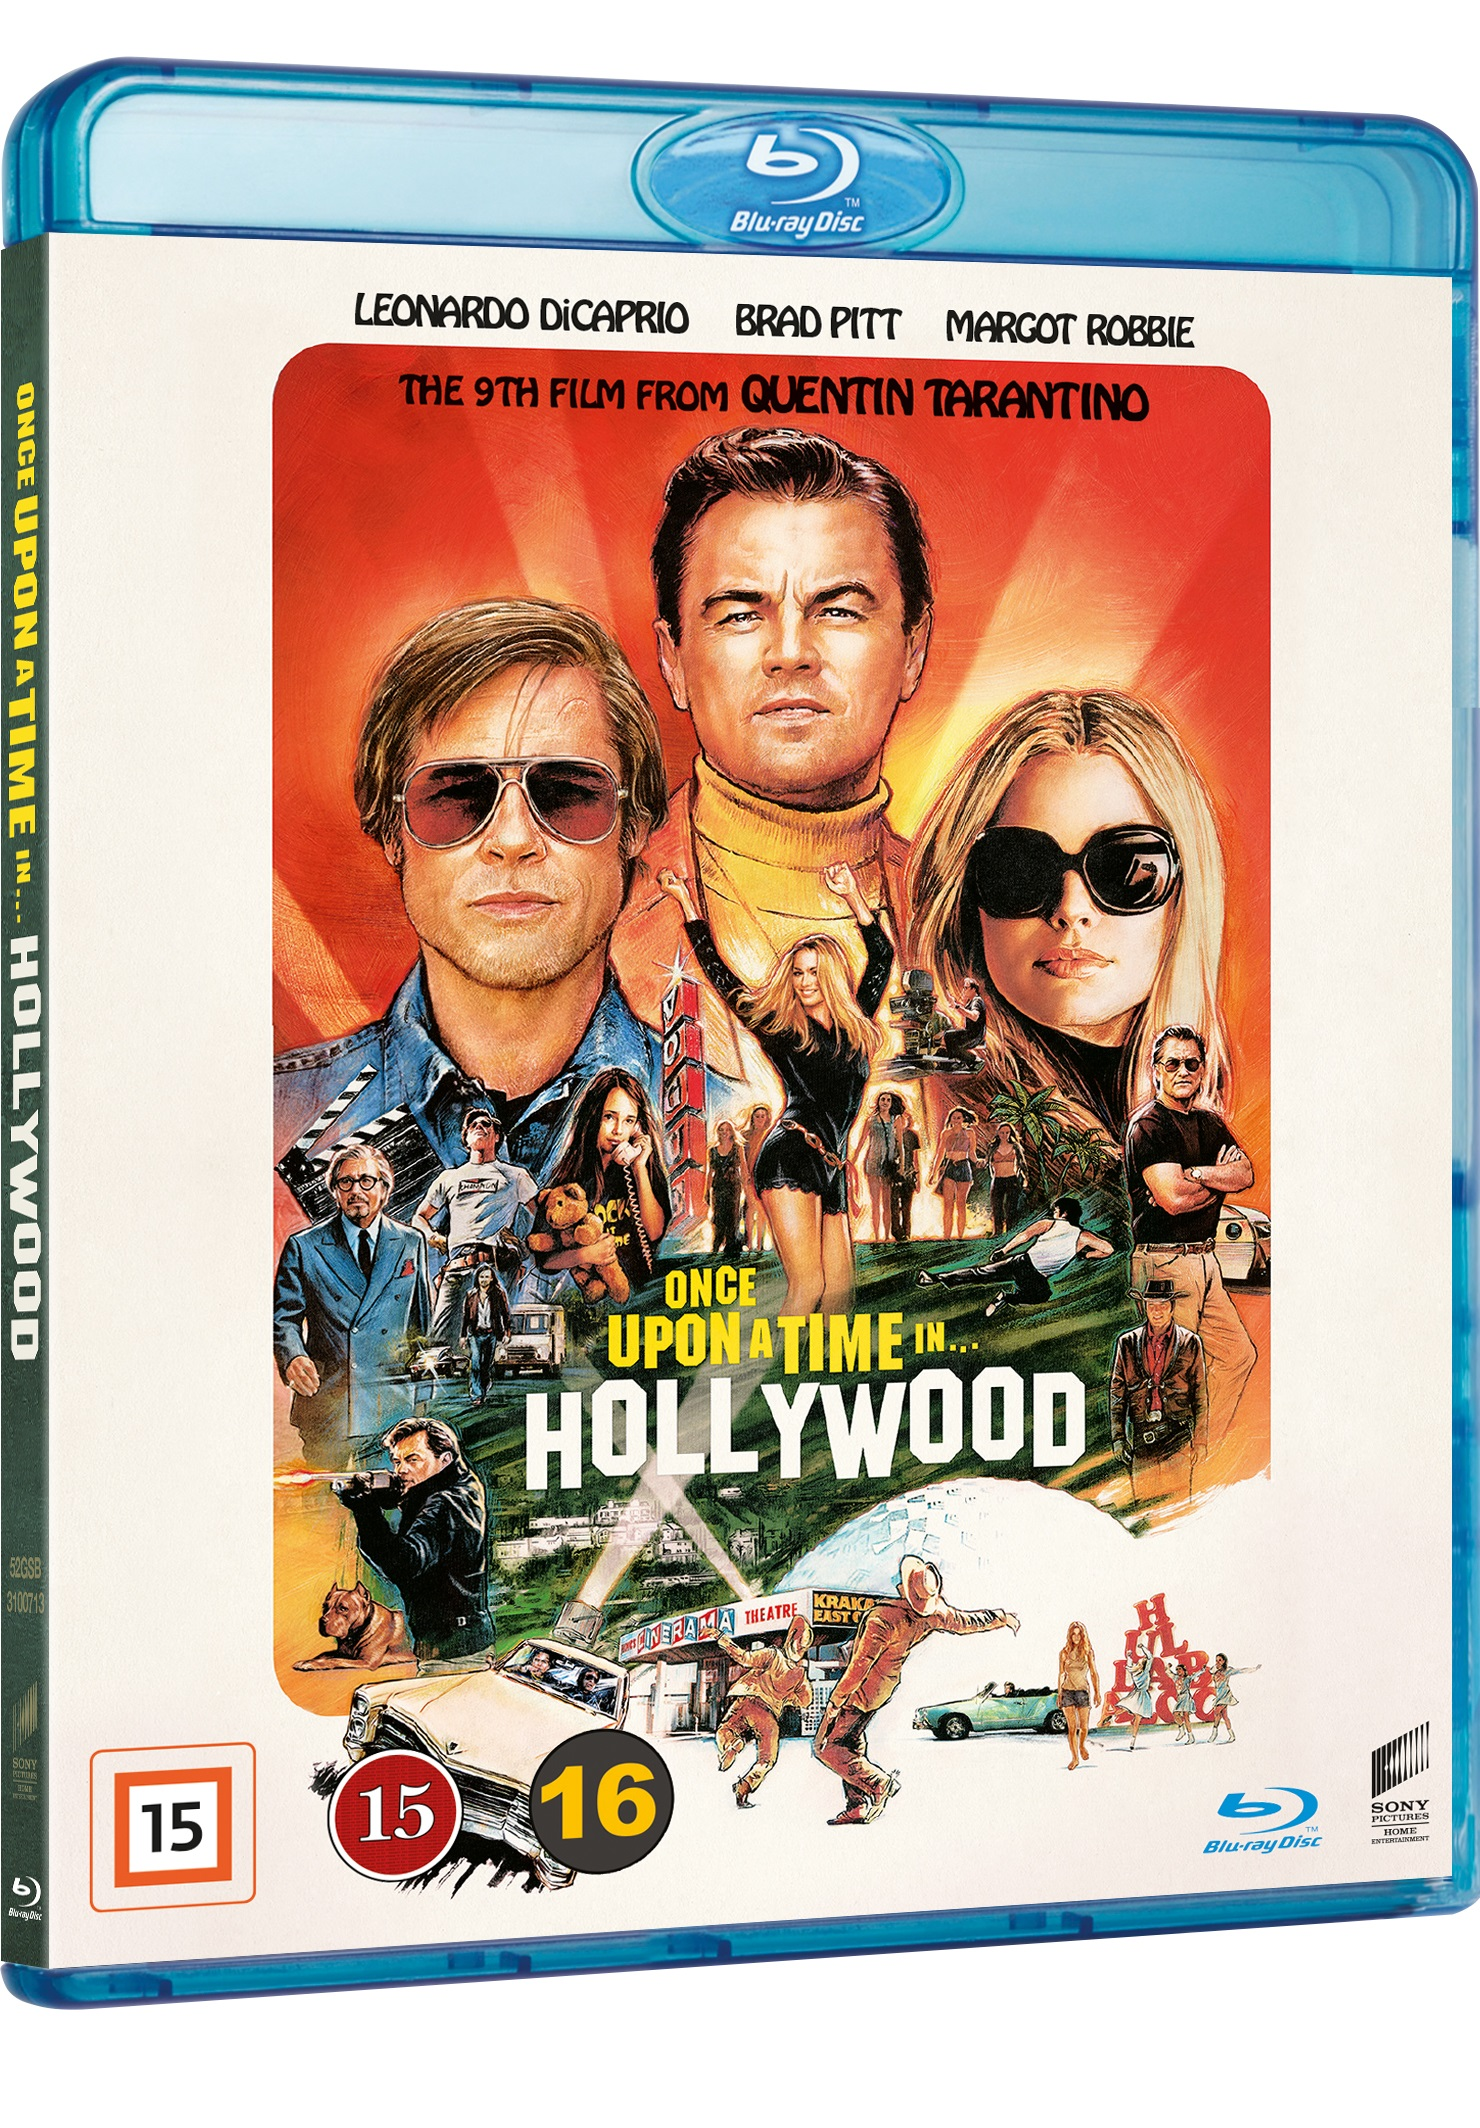 Once Upon a Time in Hollywood - Quentin Tarantino - Film -  - 7330031007130 - 27. december 2019